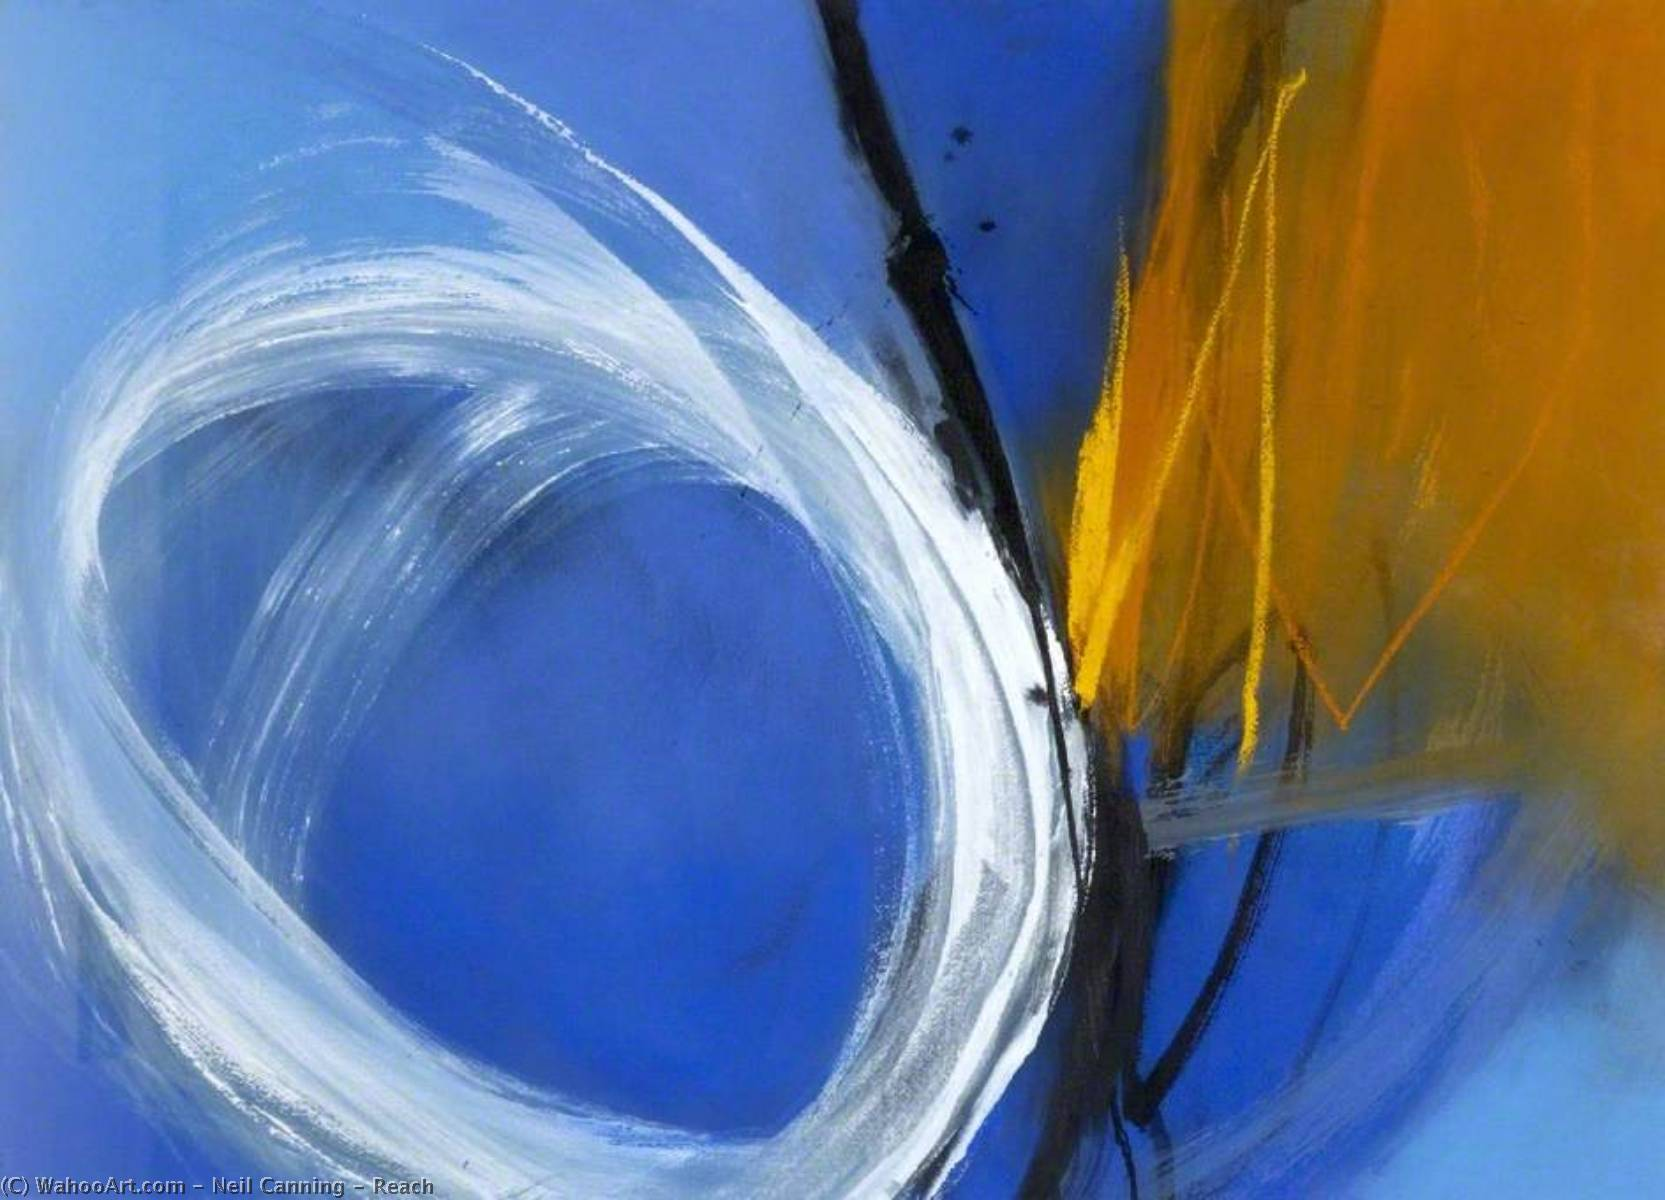 Wikioo.org - The Encyclopedia of Fine Arts - Painting, Artwork by Neil Canning - Reach